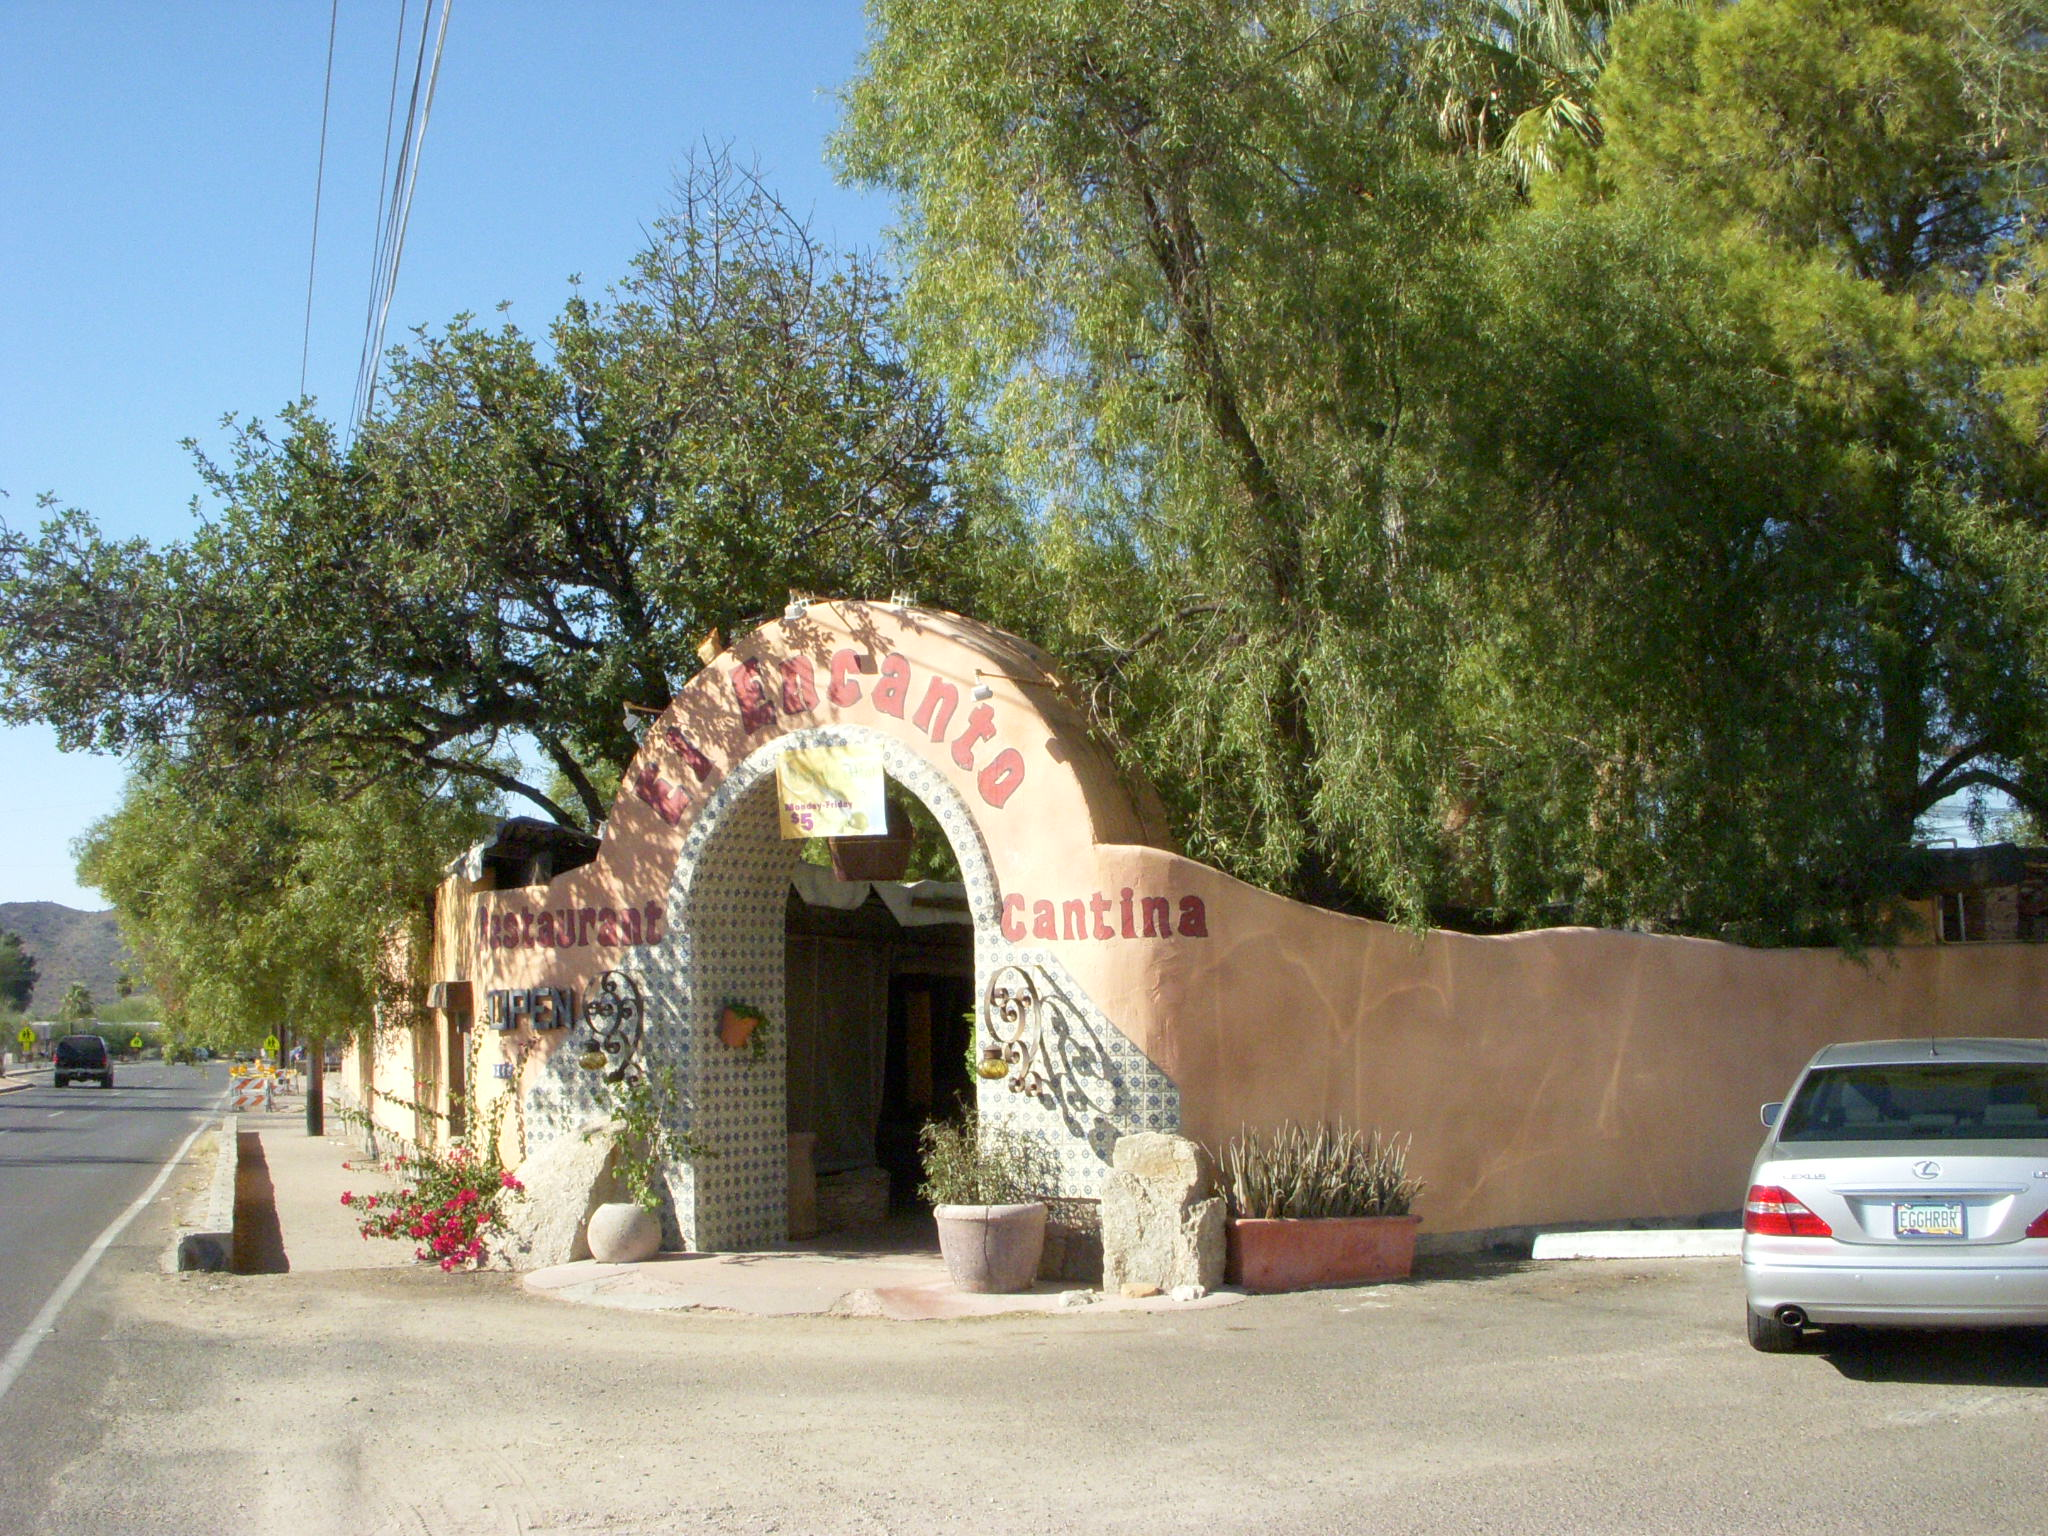 An outside view of El Encanto Restaurant that features its prominent adobe wall and entrance.